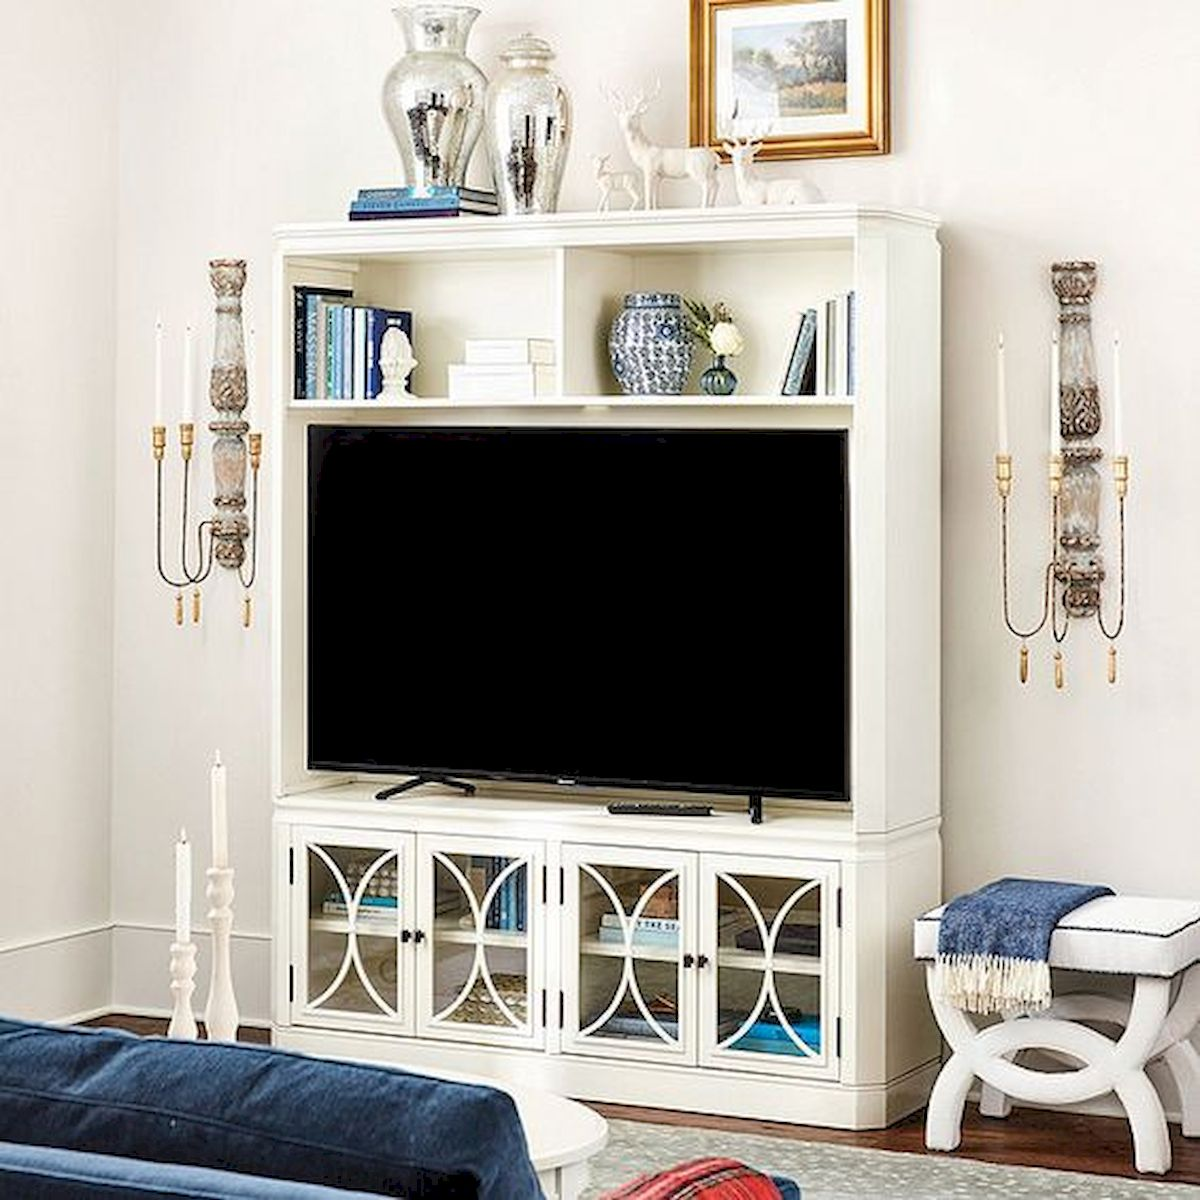 60 Beautiful Farmhouse TV Stand Design Ideas And Decor (50)